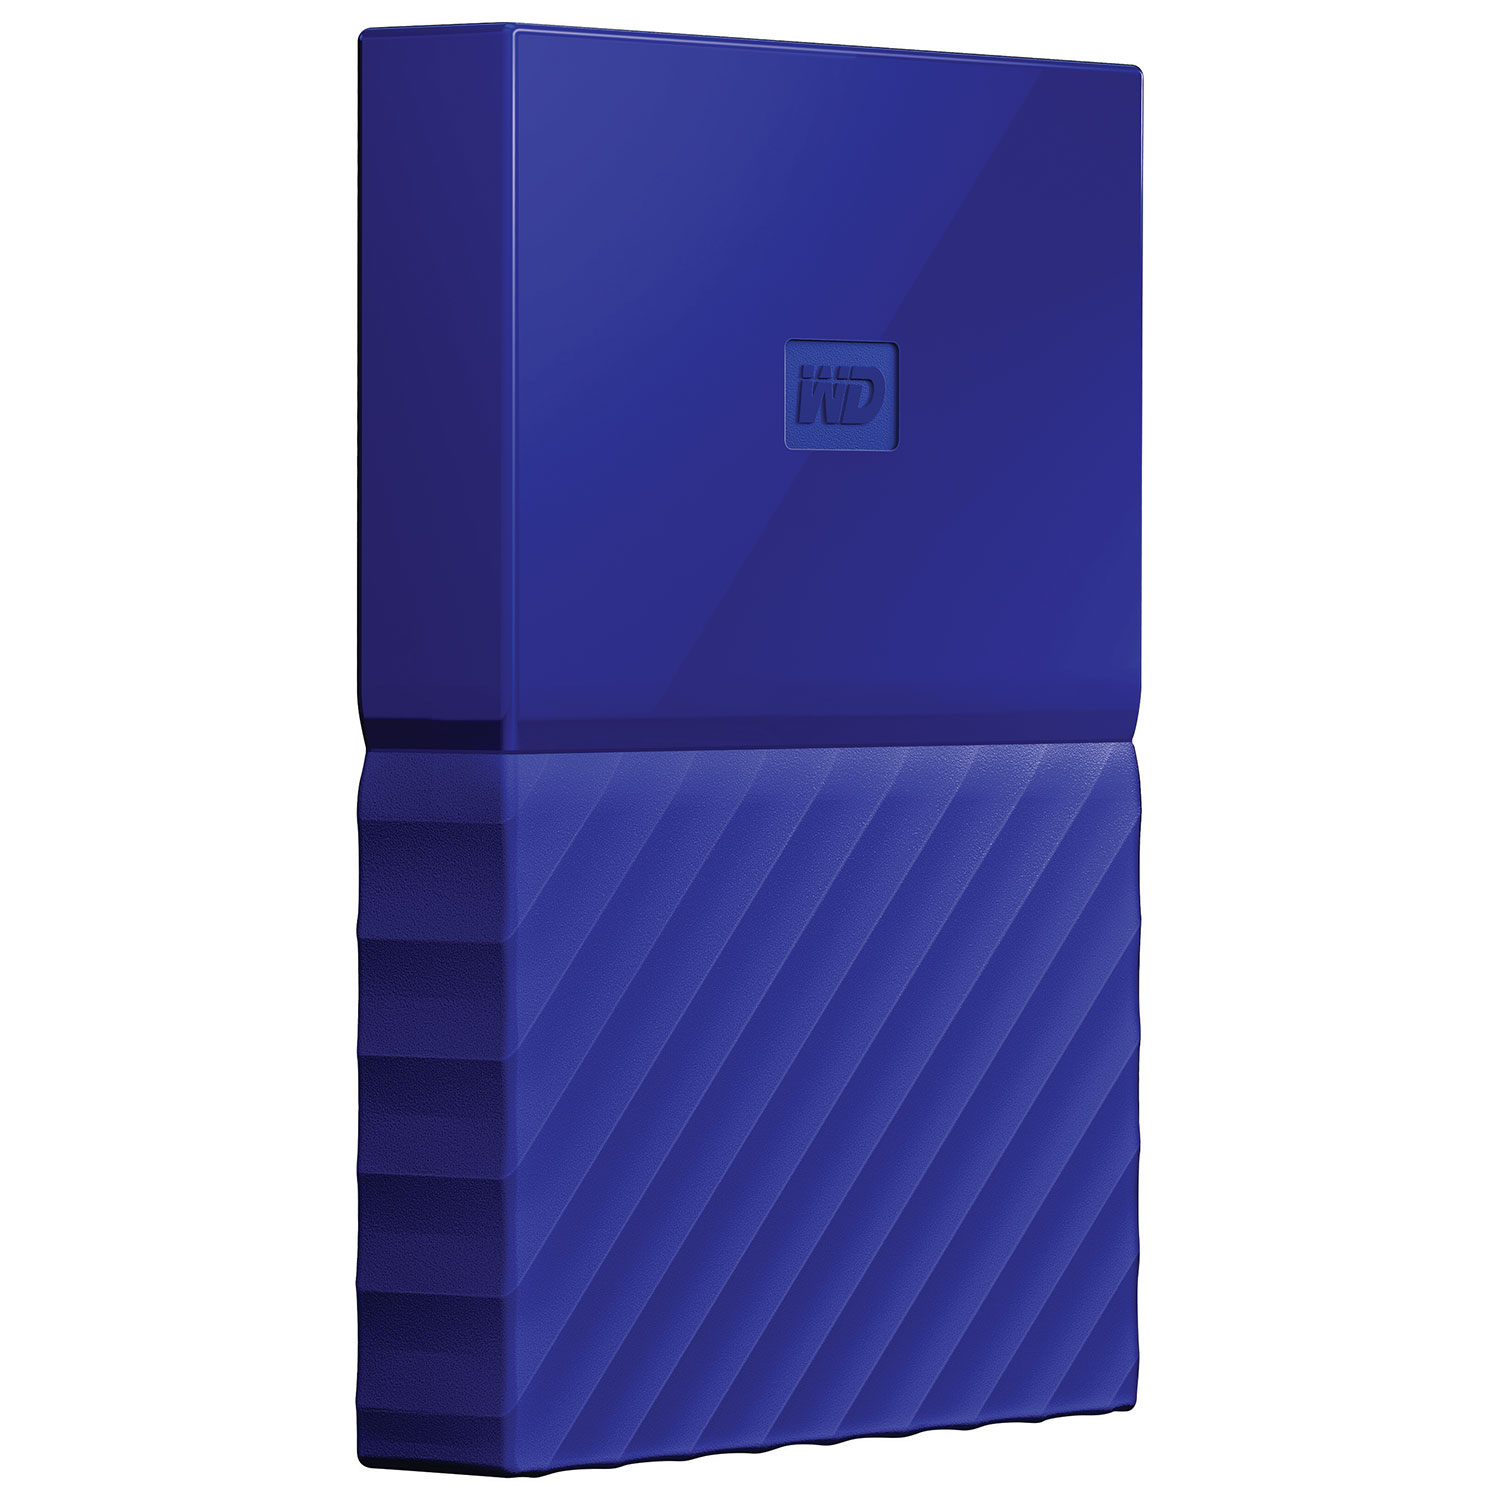 WD My Passport 2TB 2.5USB 3.0 Portable External Hard Drive $99.jpg